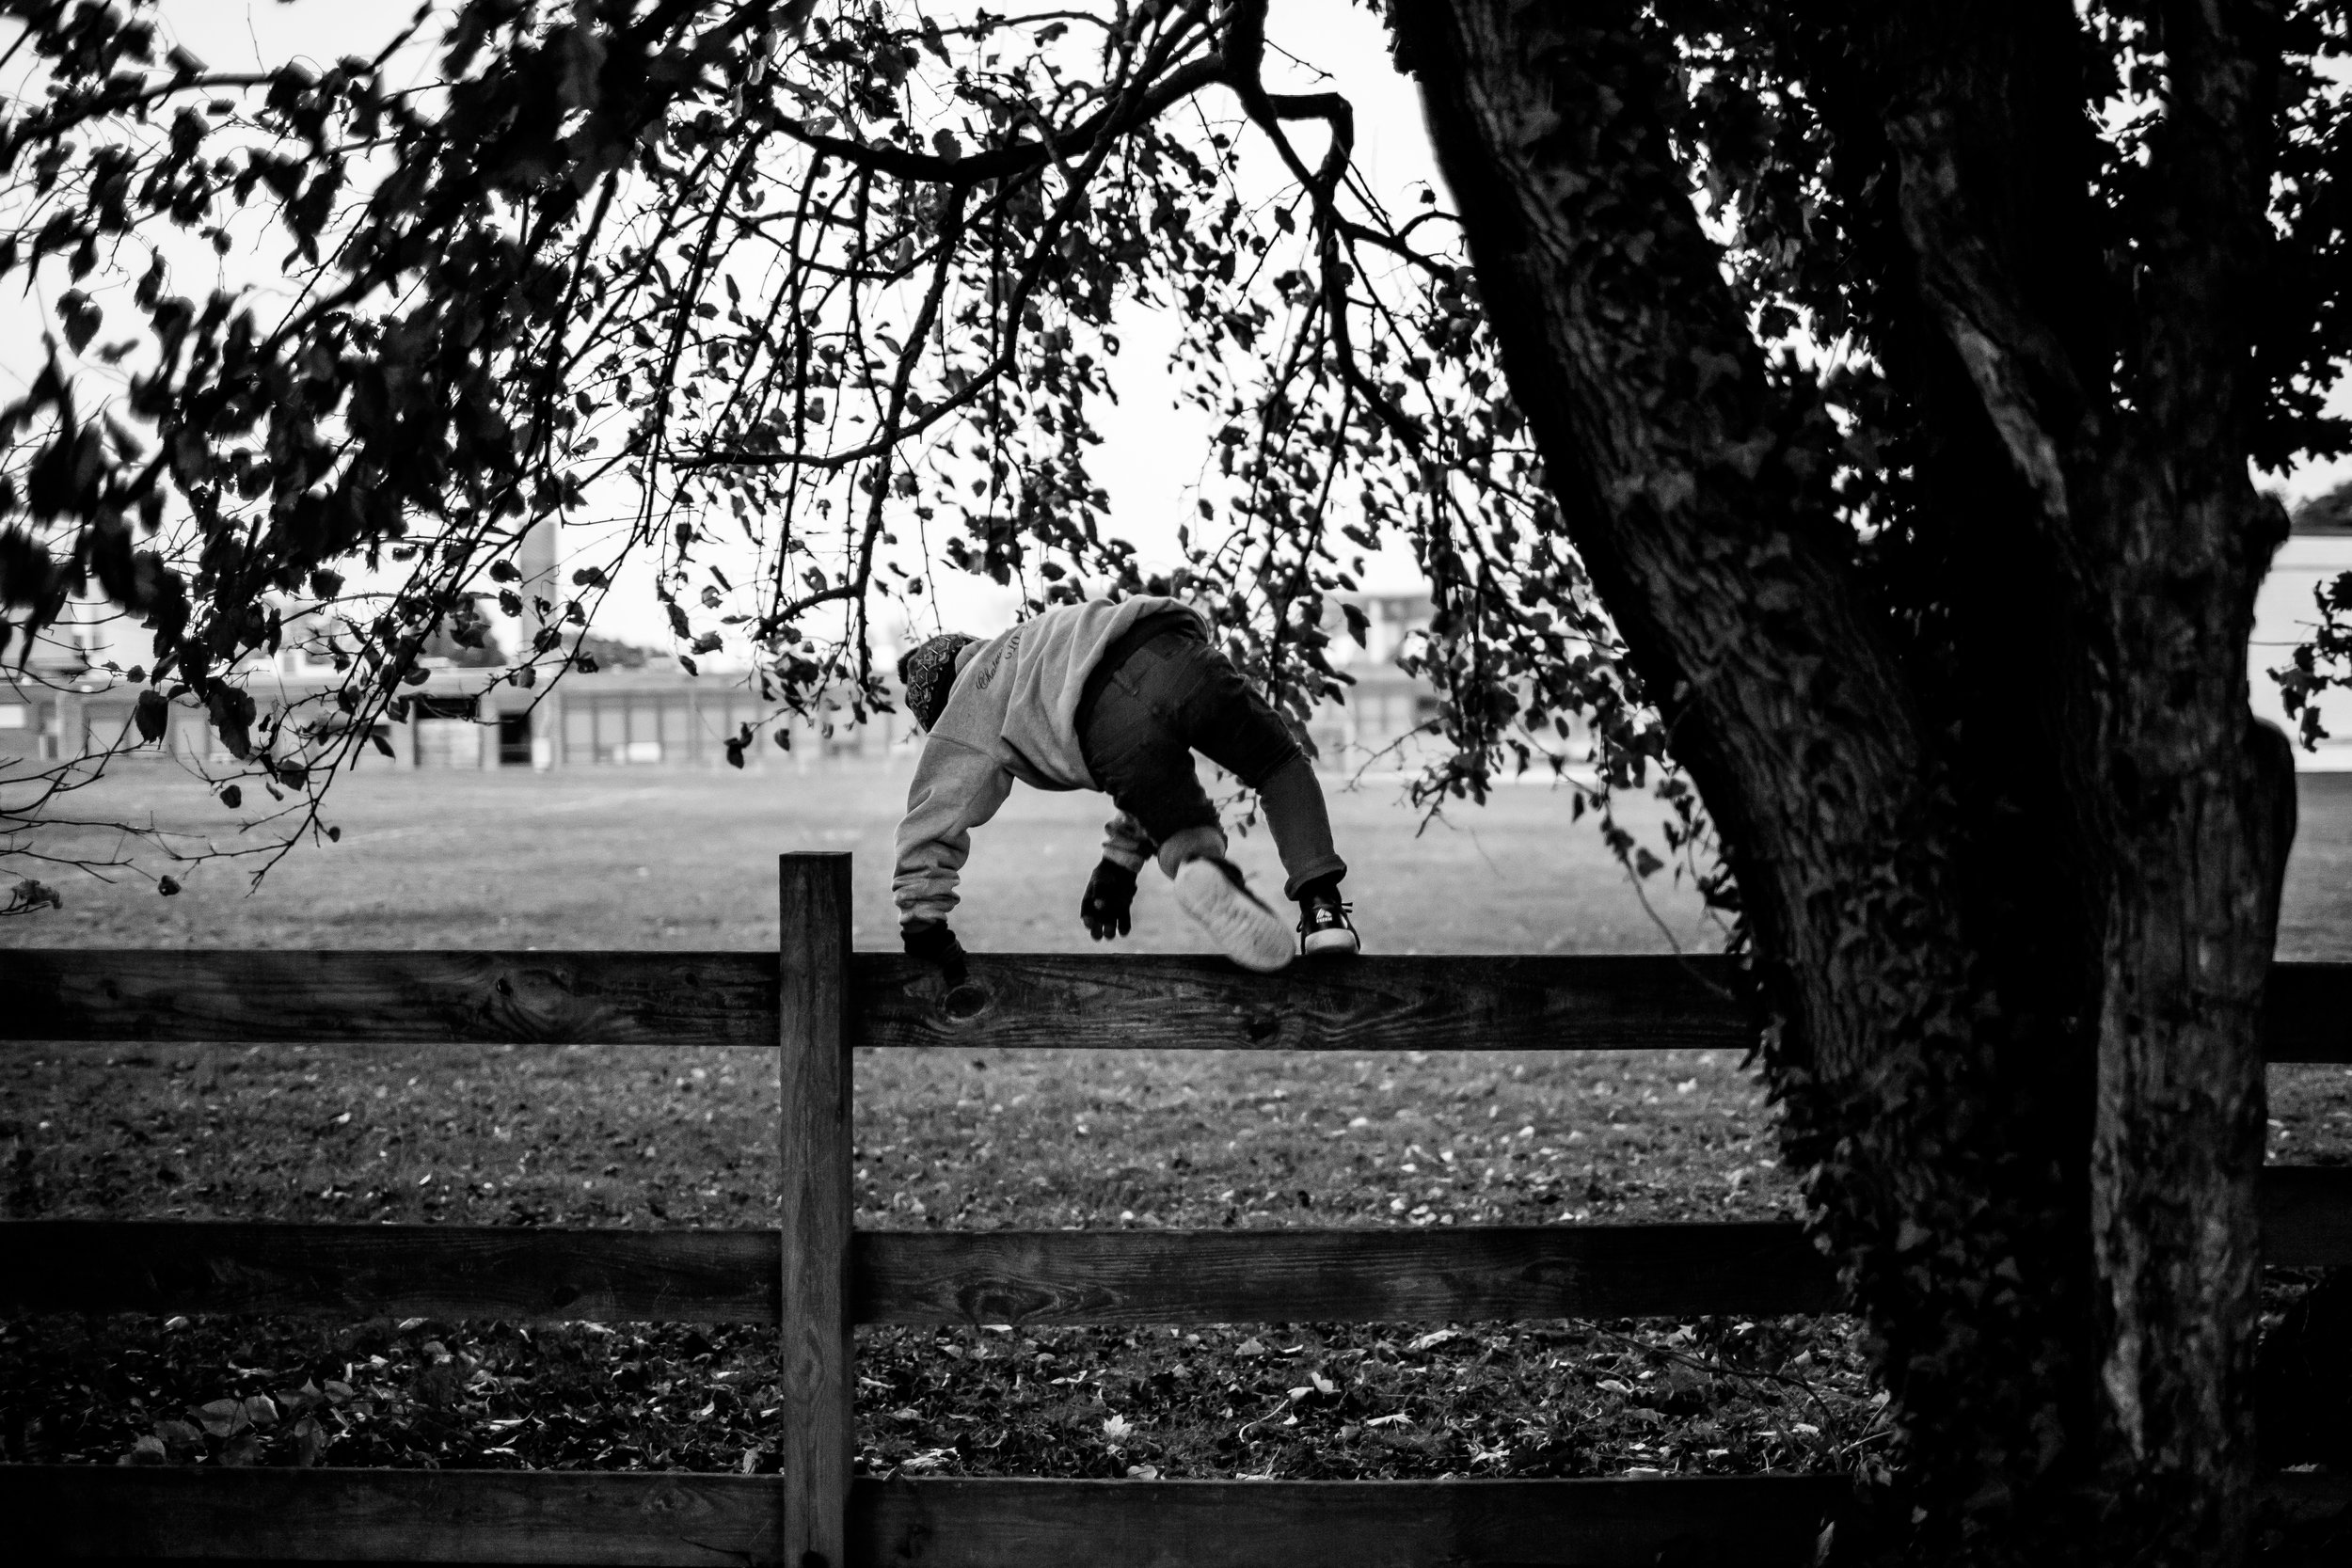 Boy climbing over the fence